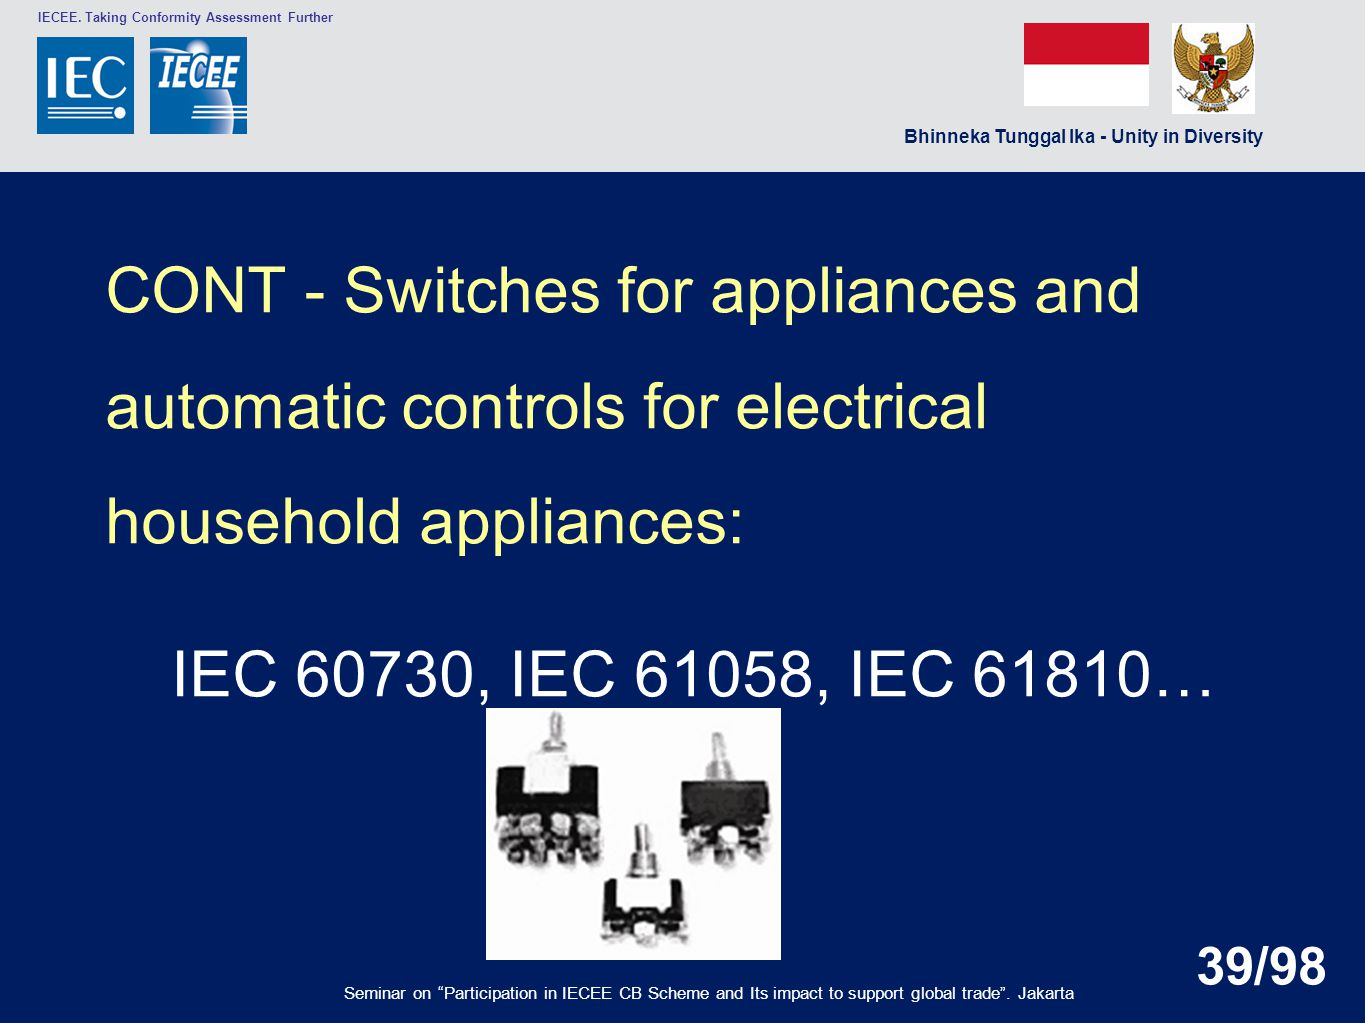 CONT - Switches for appliances and automatic controls for electrical